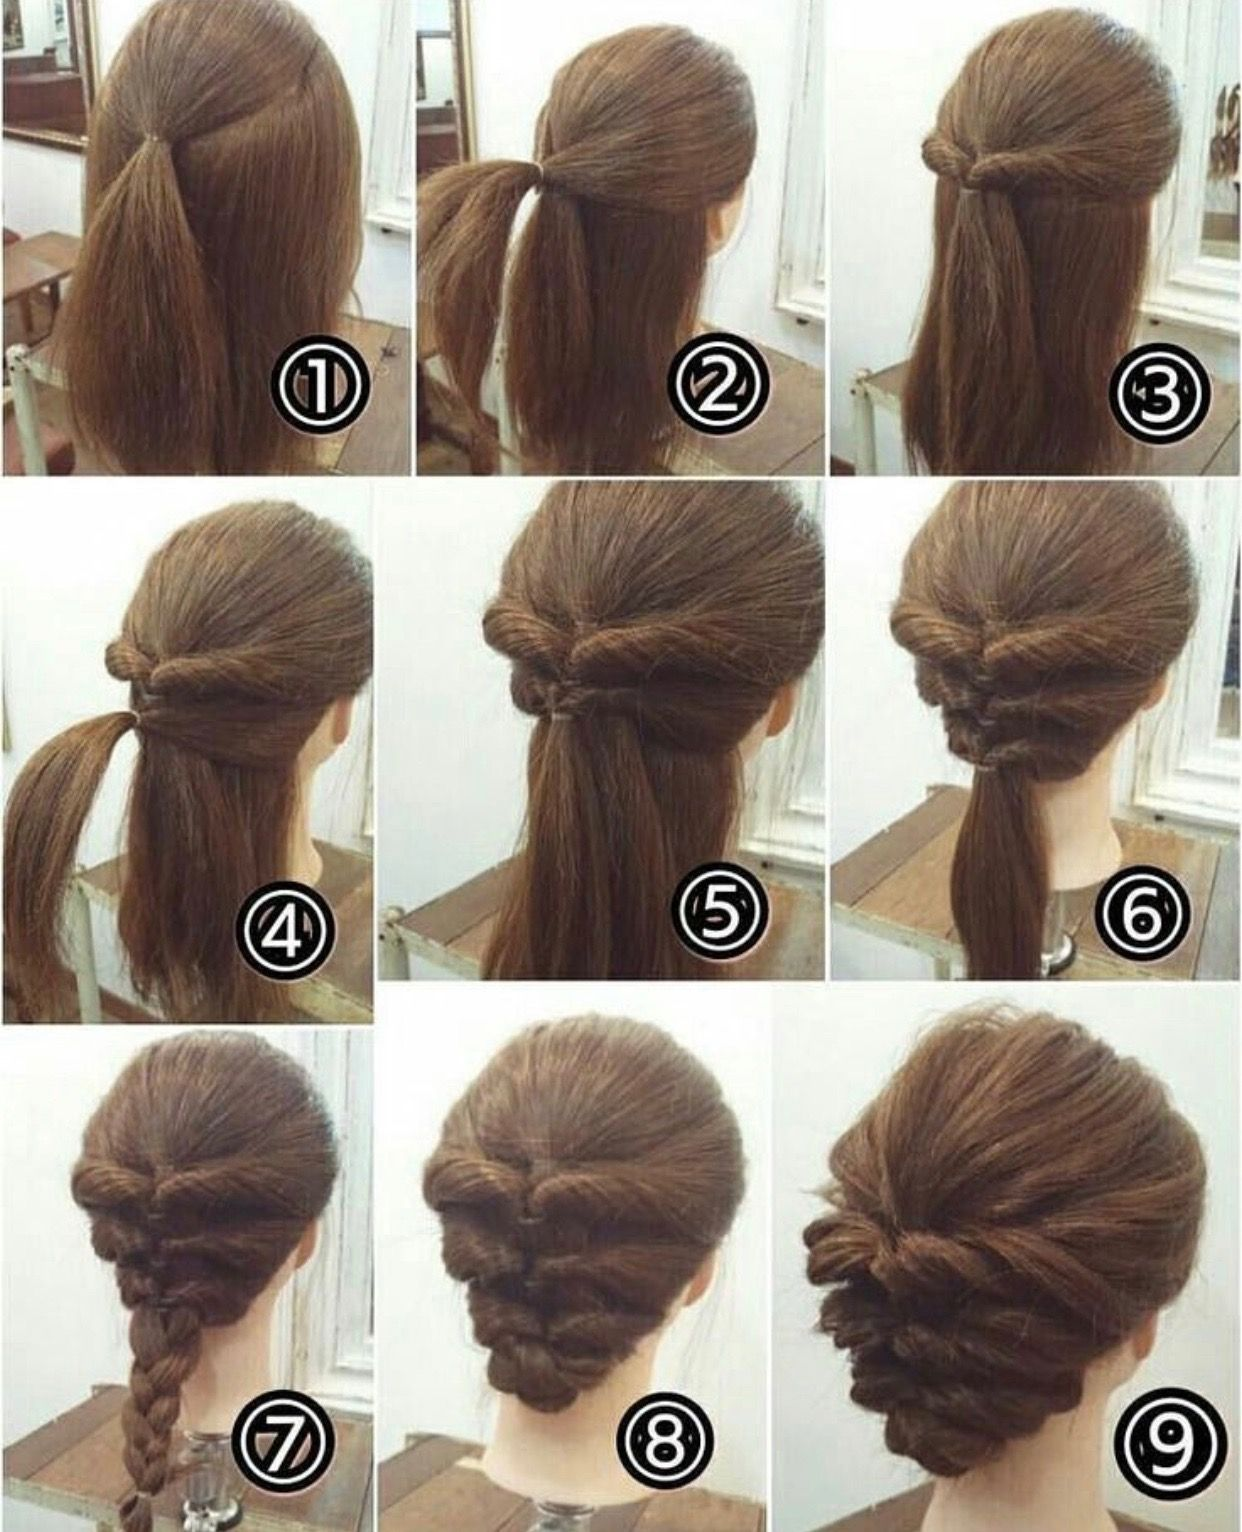 Easy Cute Hairstyles Adorable Pinnehulicious On Hair Games  Pinterest  Hair Game